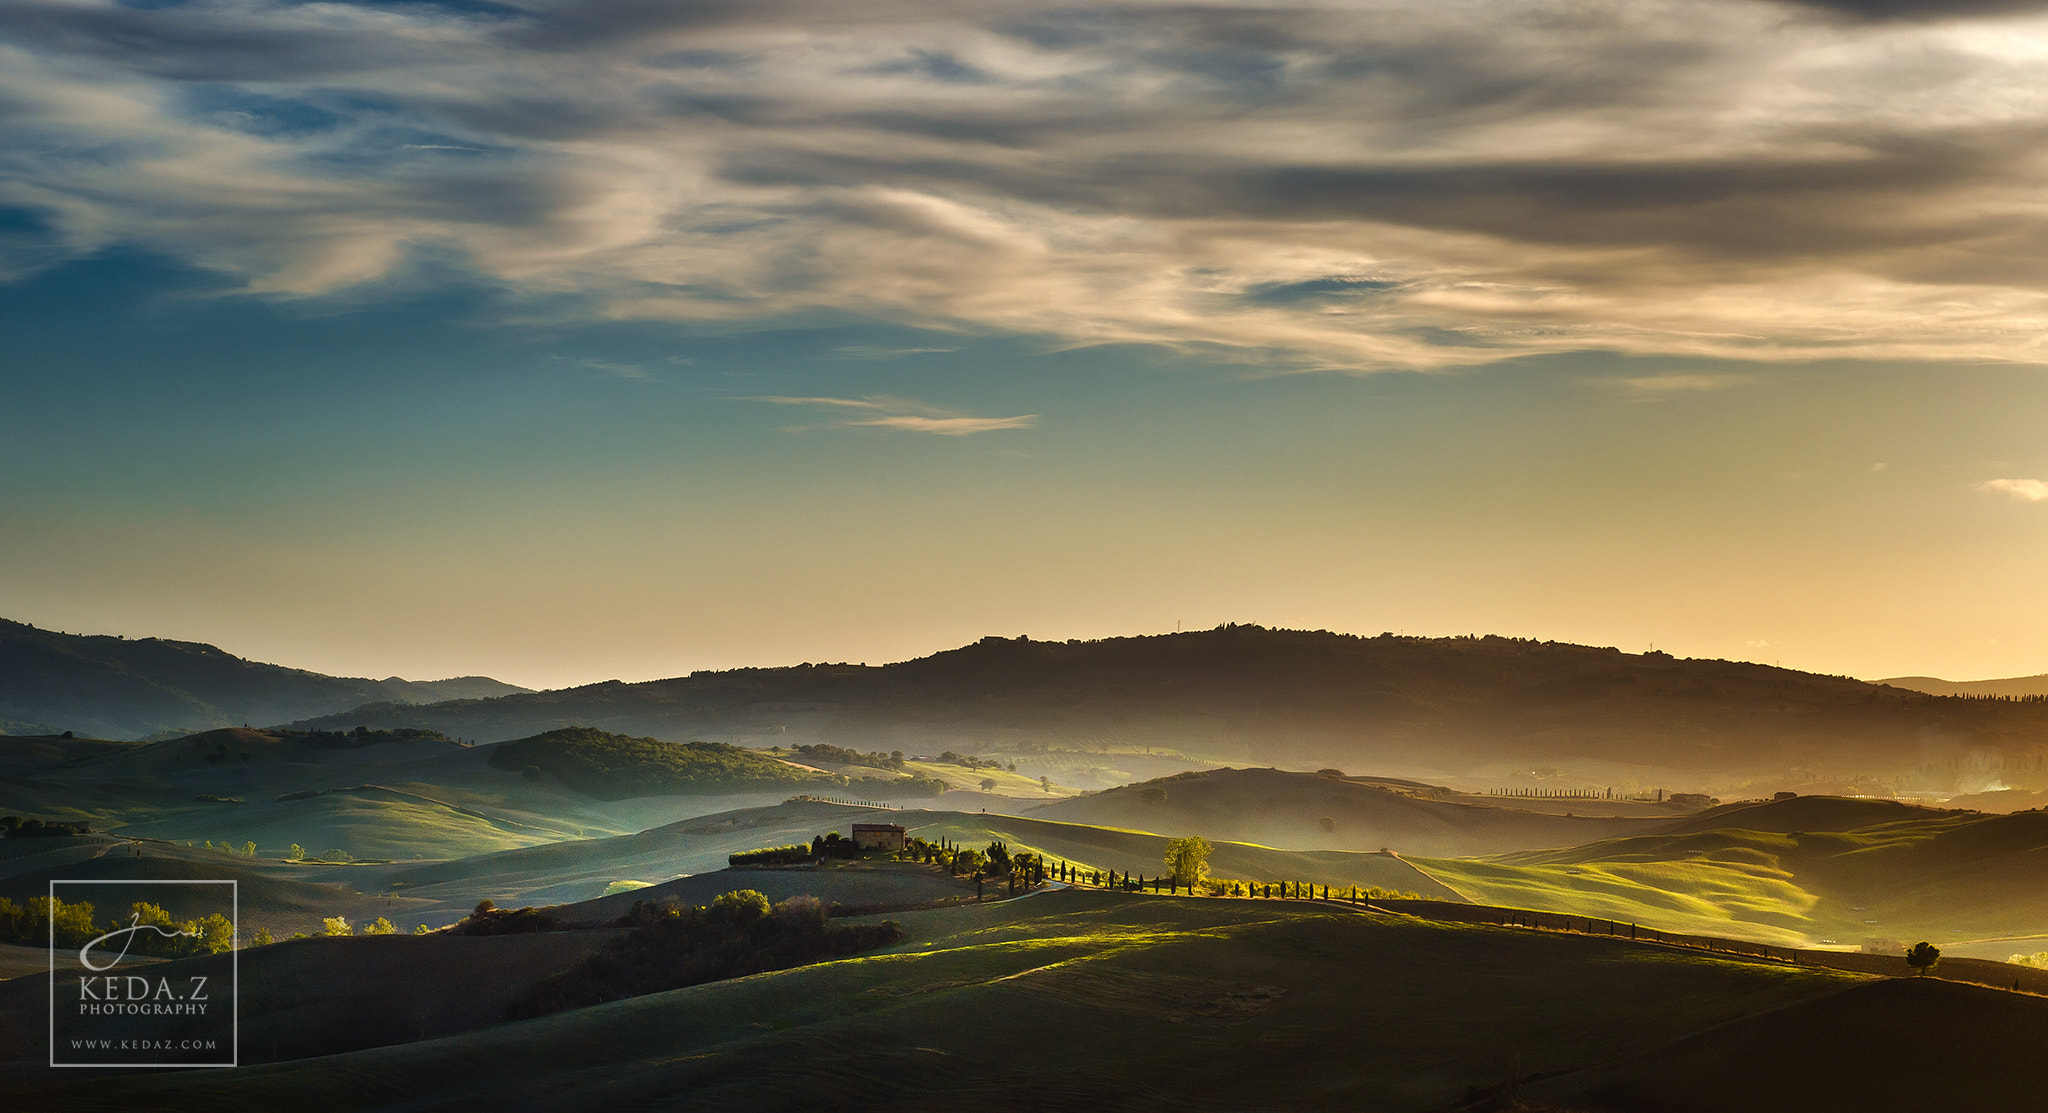 Photograph Tuscany by Keda.Z Feng on 500px